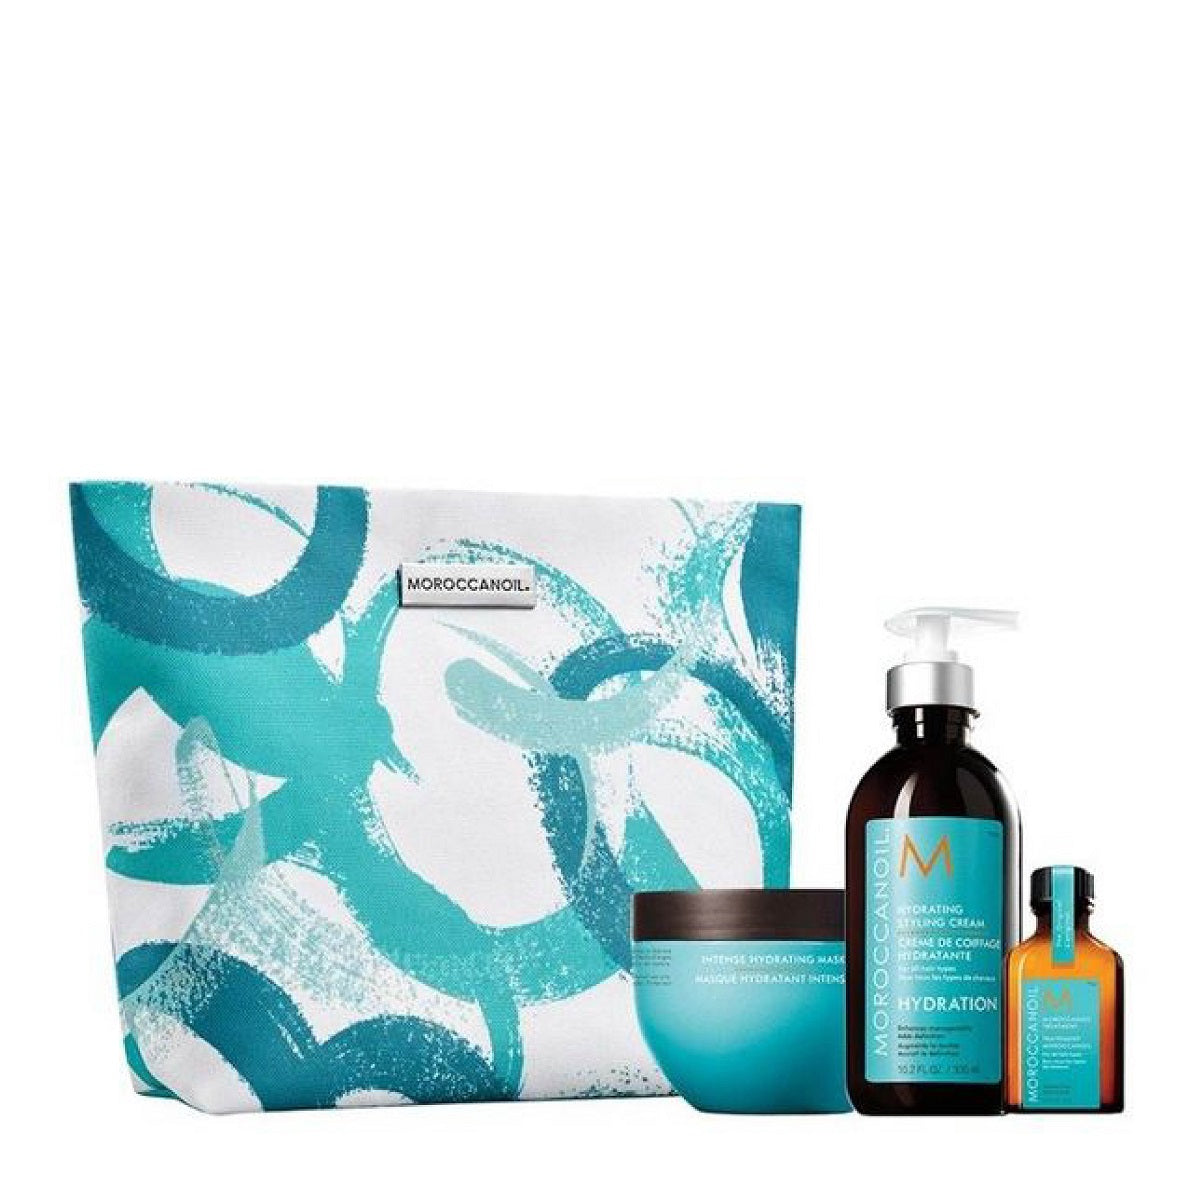 Moroccanoil Dreaming Of Hydration Gift Set